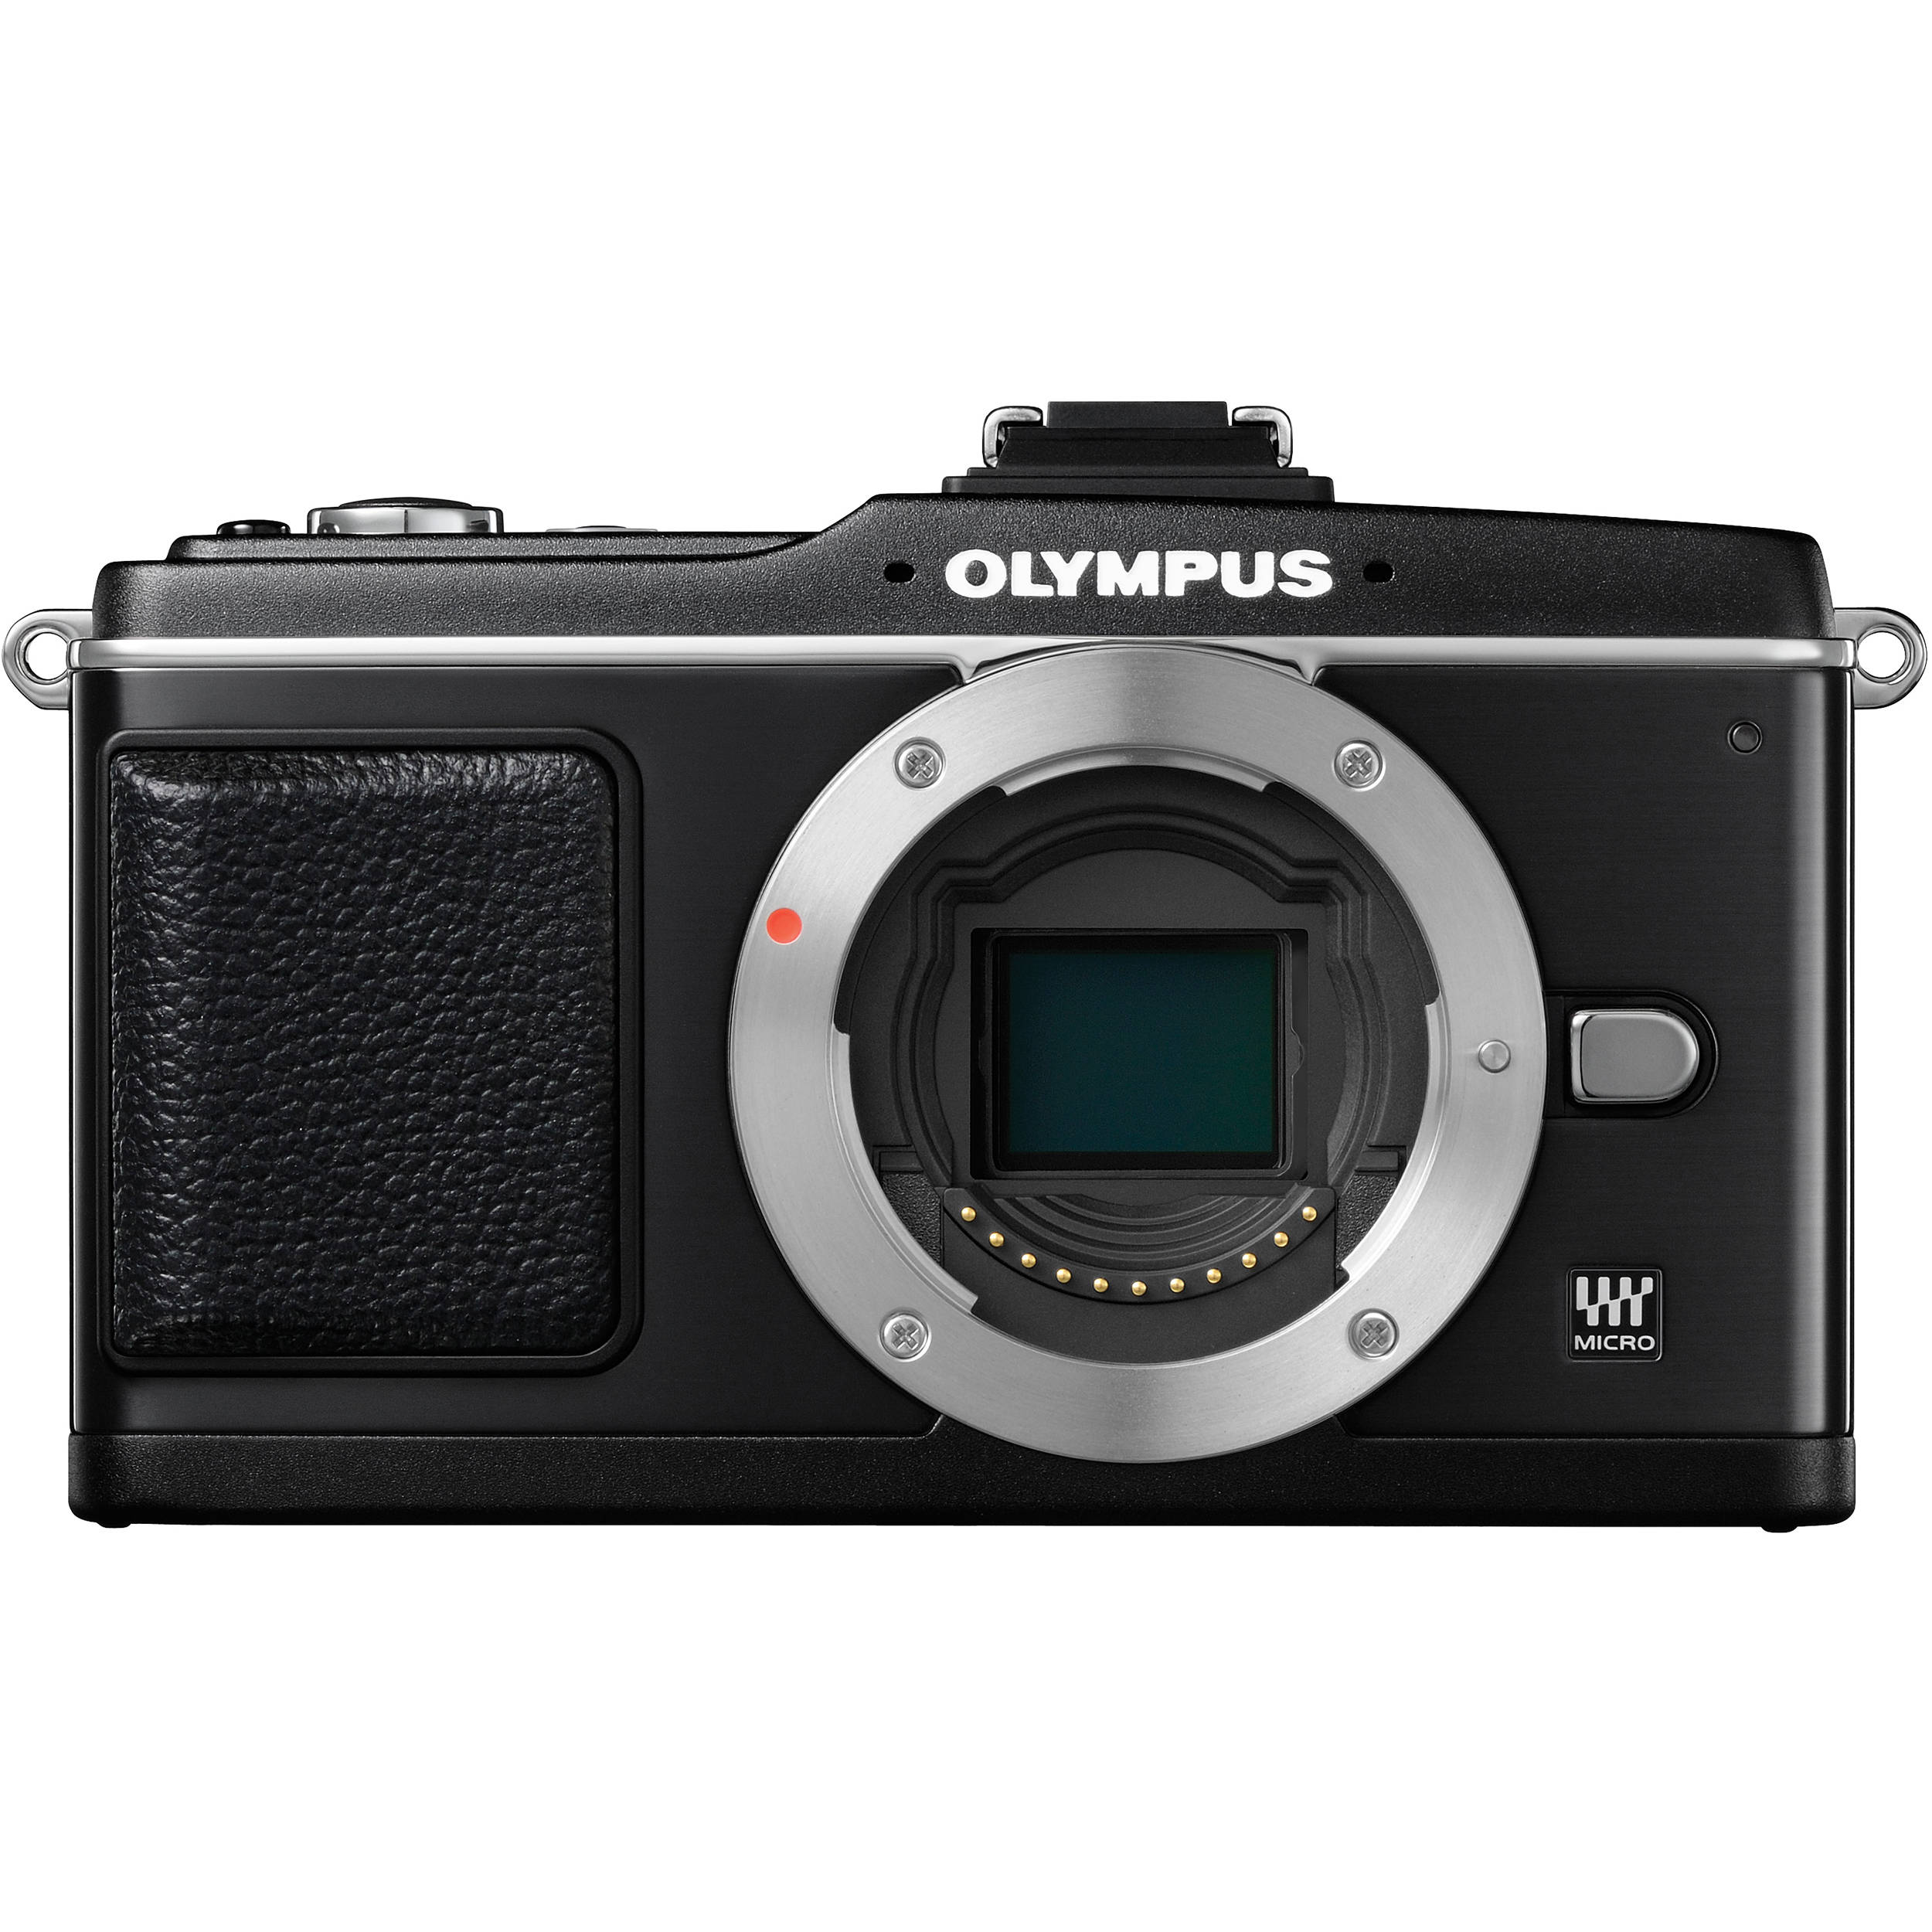 Olympus Digital Camera E-P2 Drivers for Windows